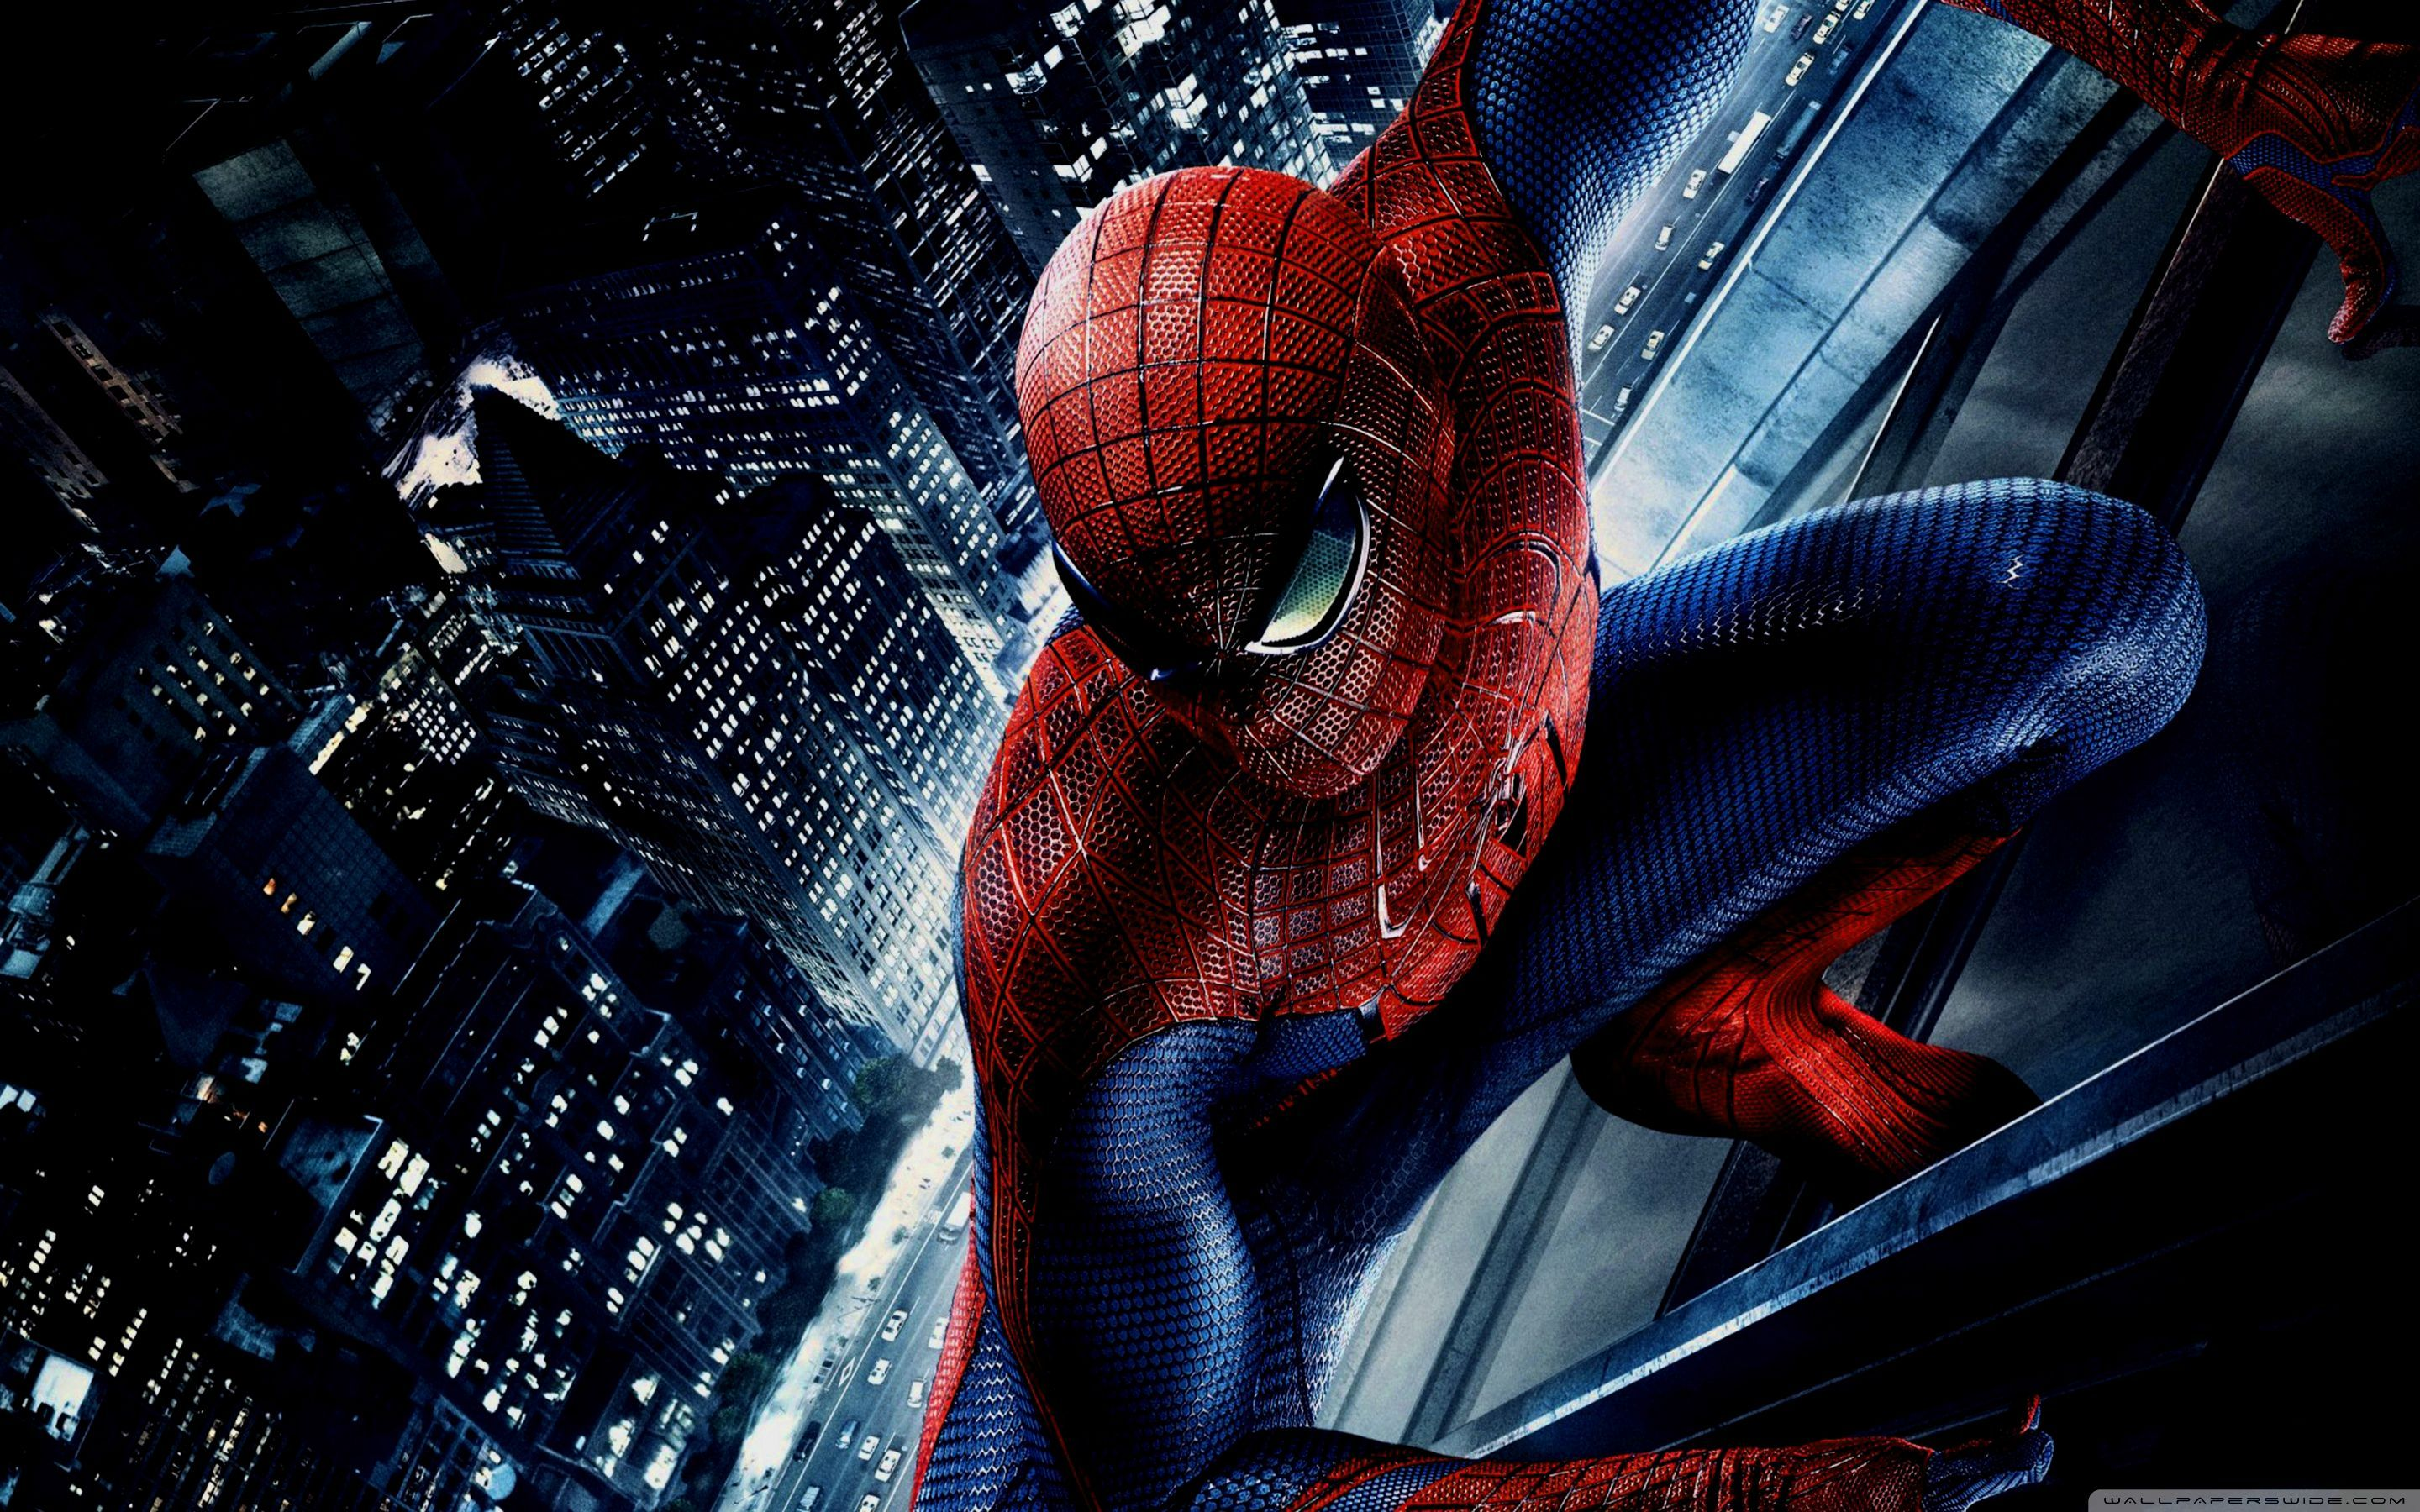 Spiderman Hd Wallpapers Desktop (With images) Spiderman